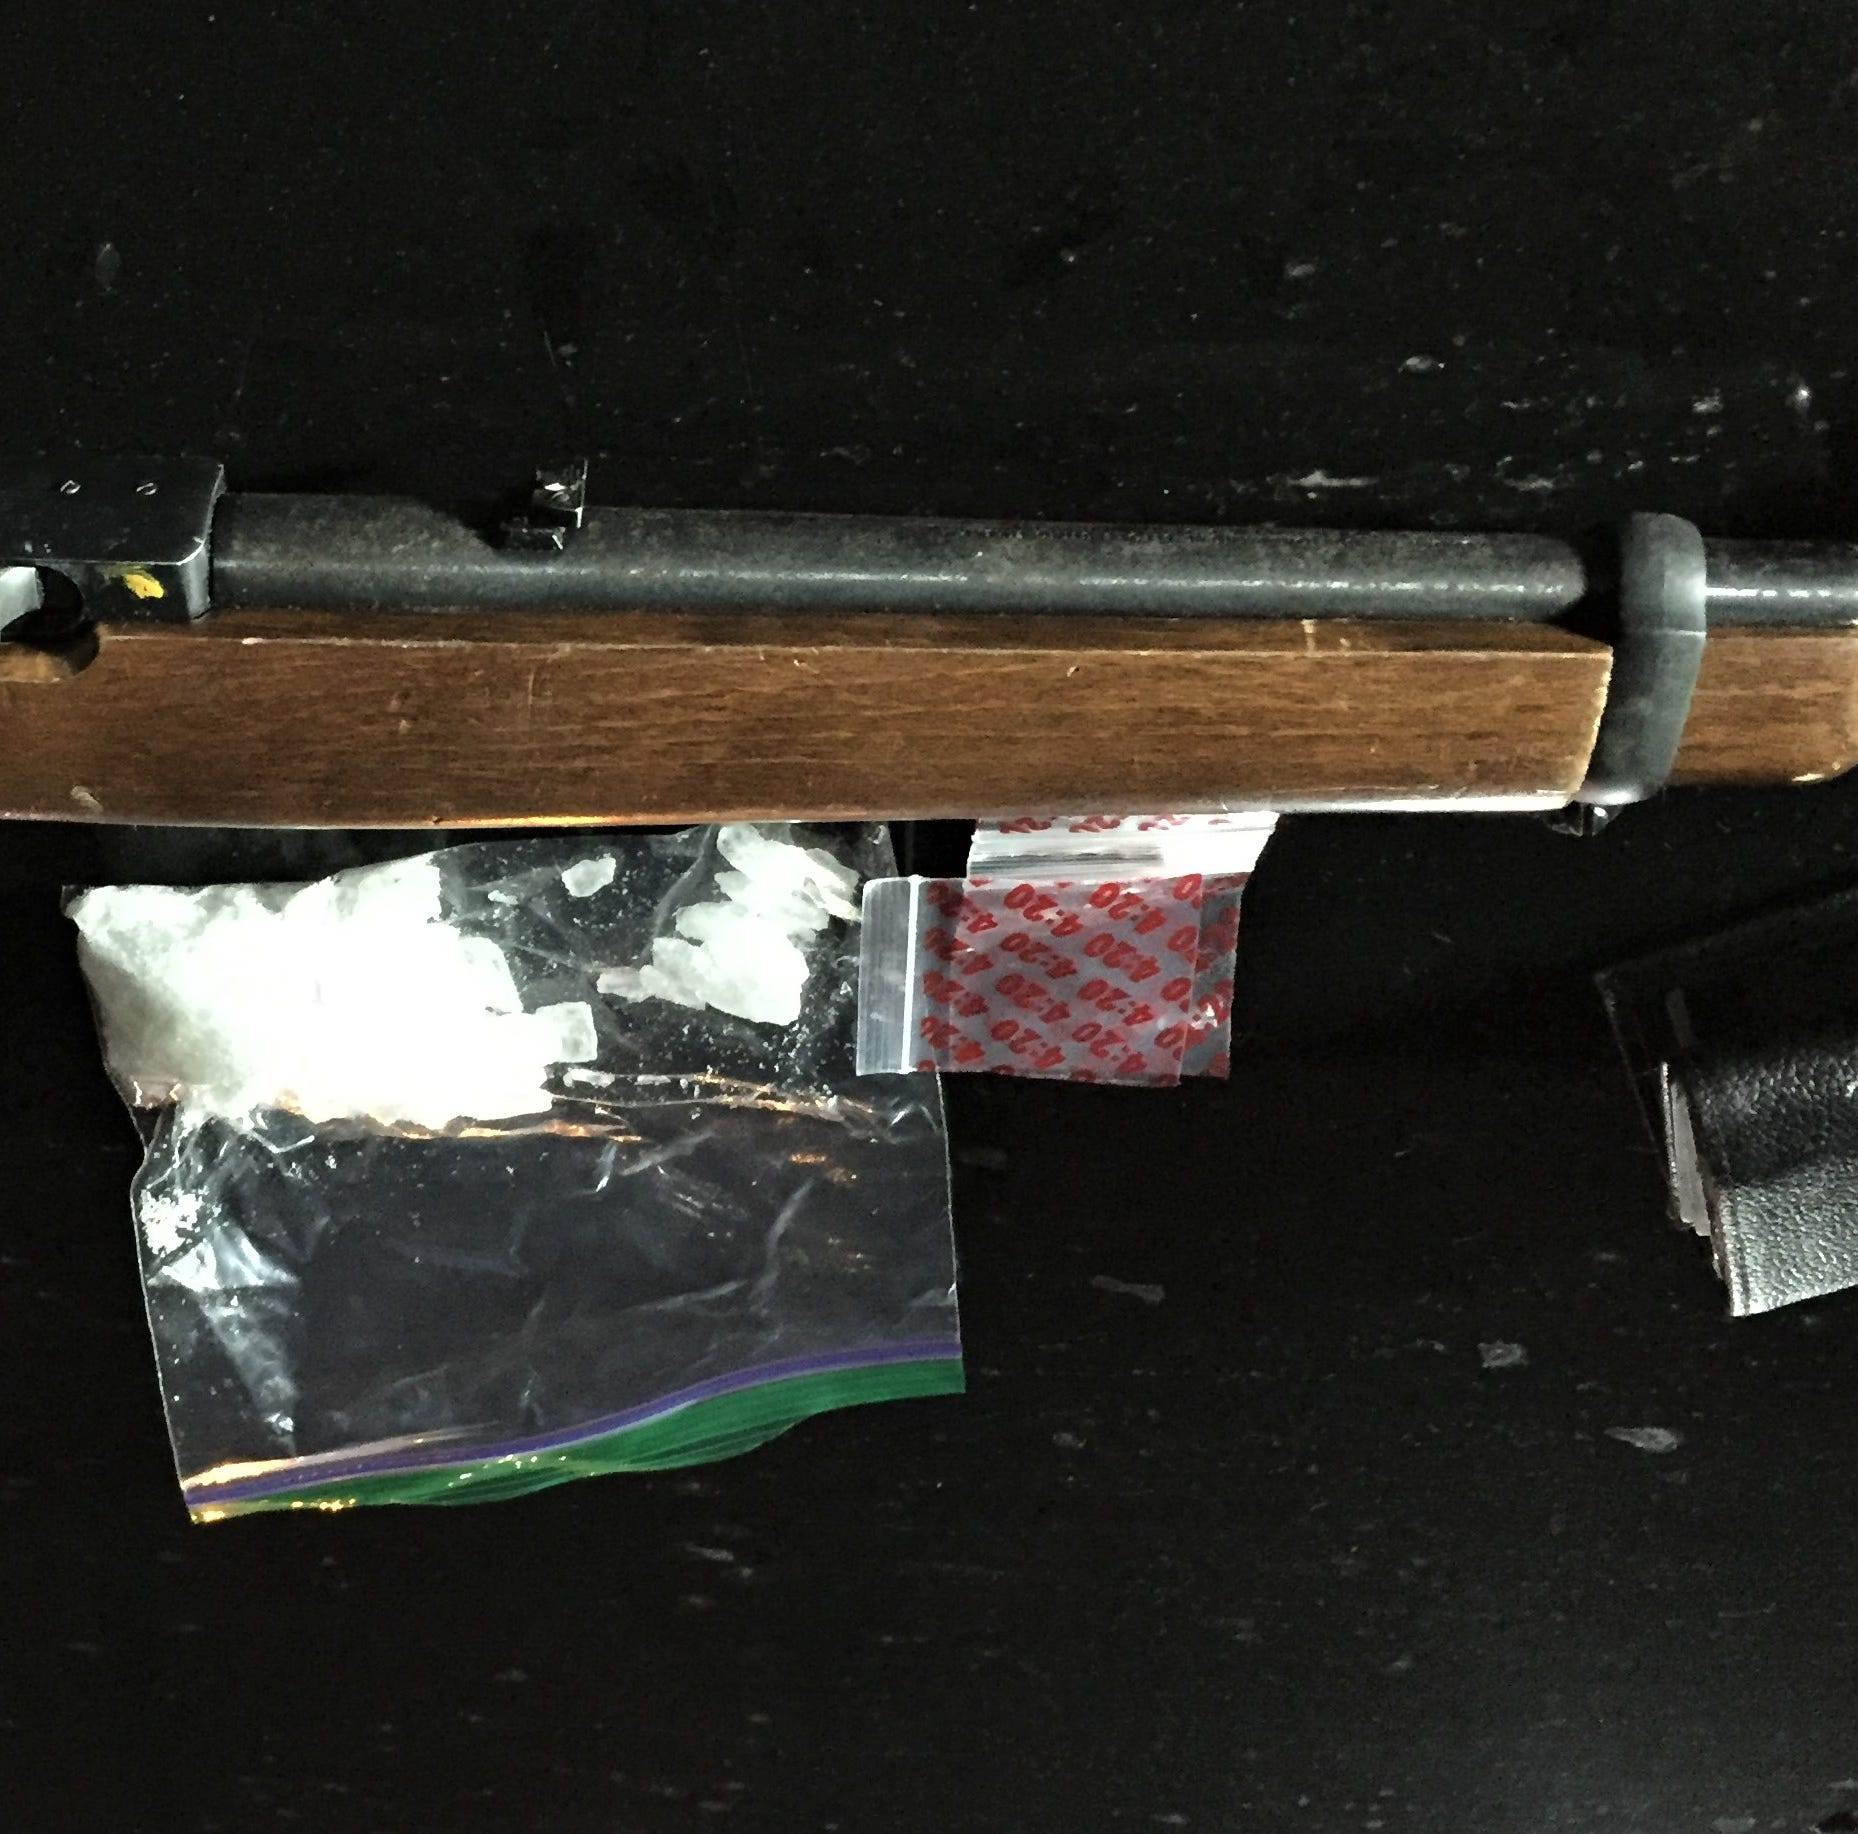 Oxnard traffic stop yields meth, gun; 1 arrested